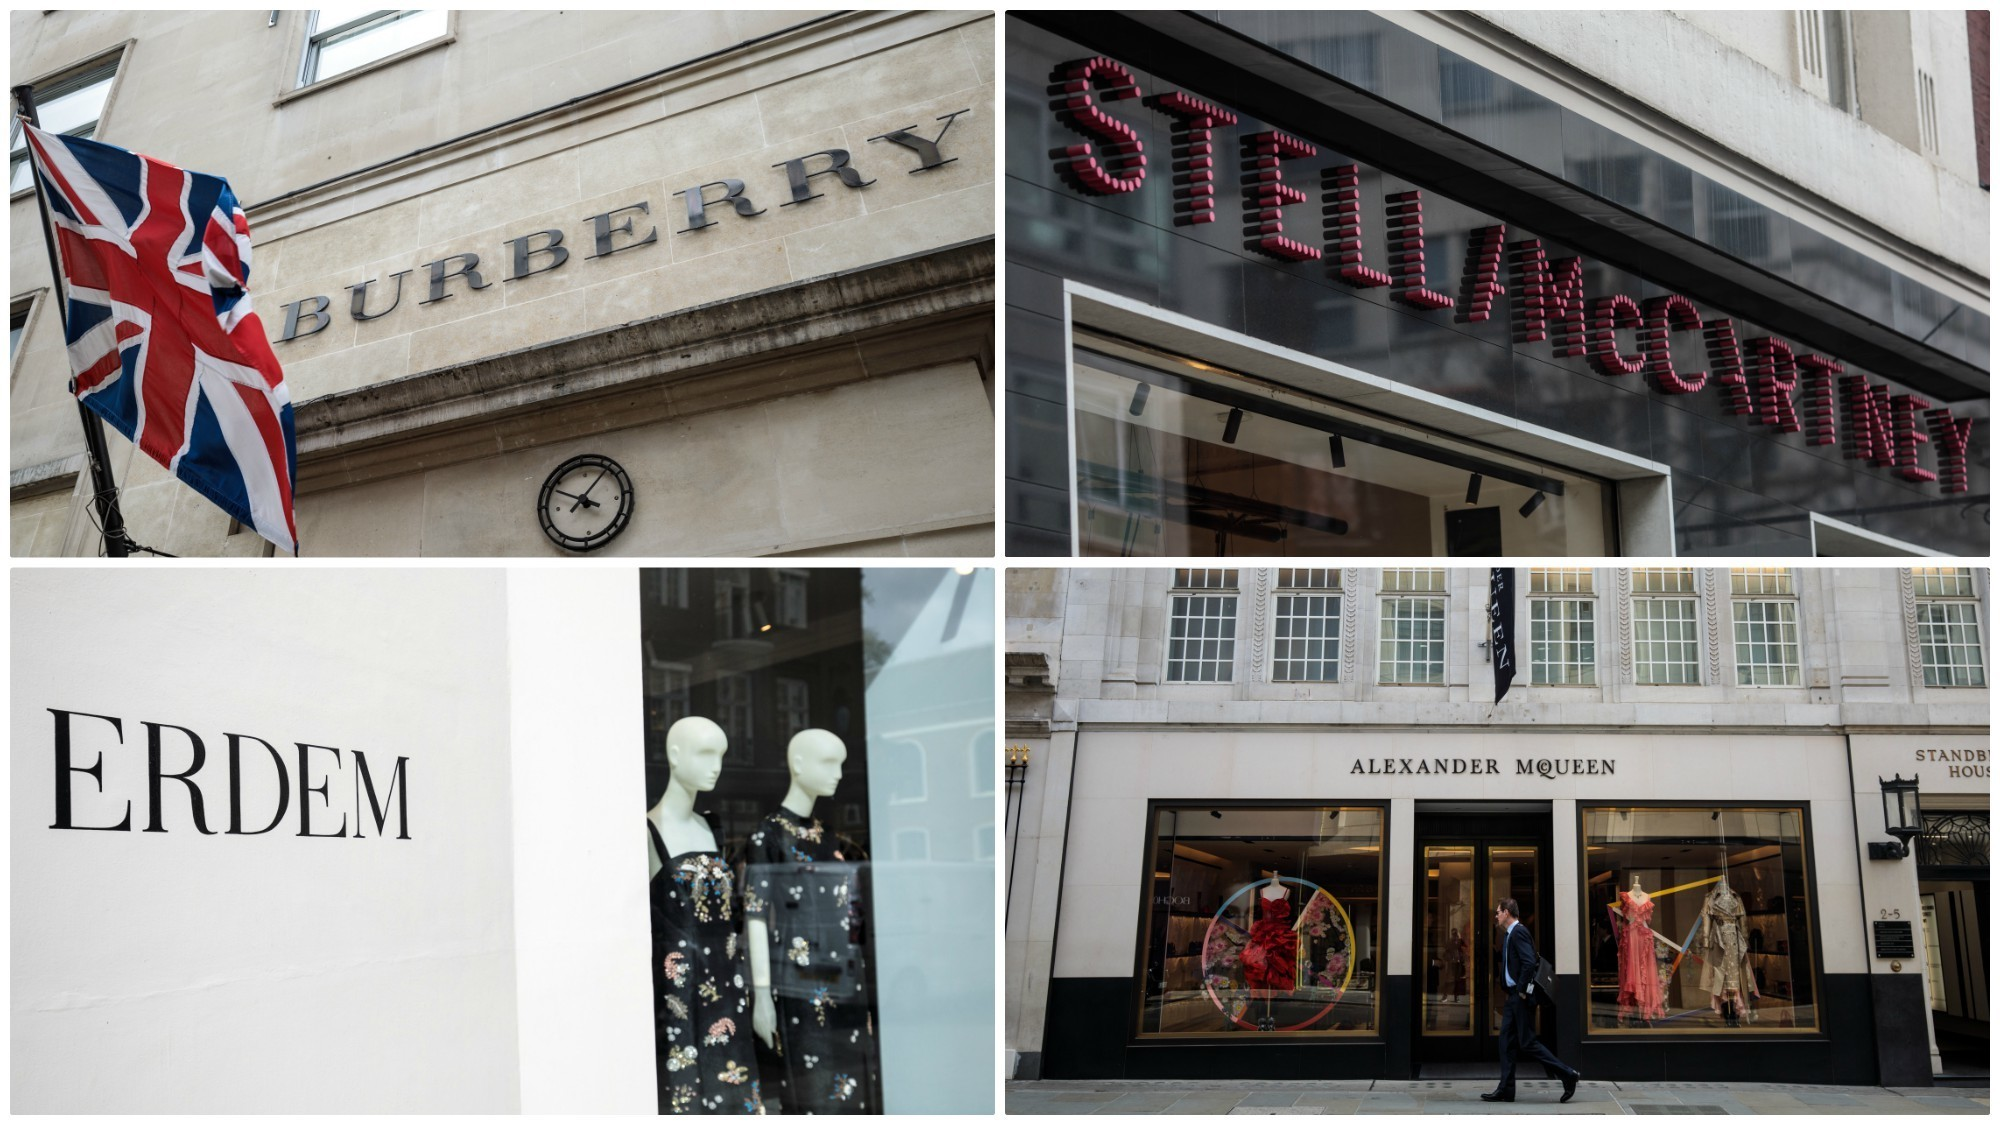 Burberry, clockwise from top left, Stella McCartney, Erdem and Alexander McQueen are some of the brands mentioned as possibly designing Meghan Markle's wedding gown.